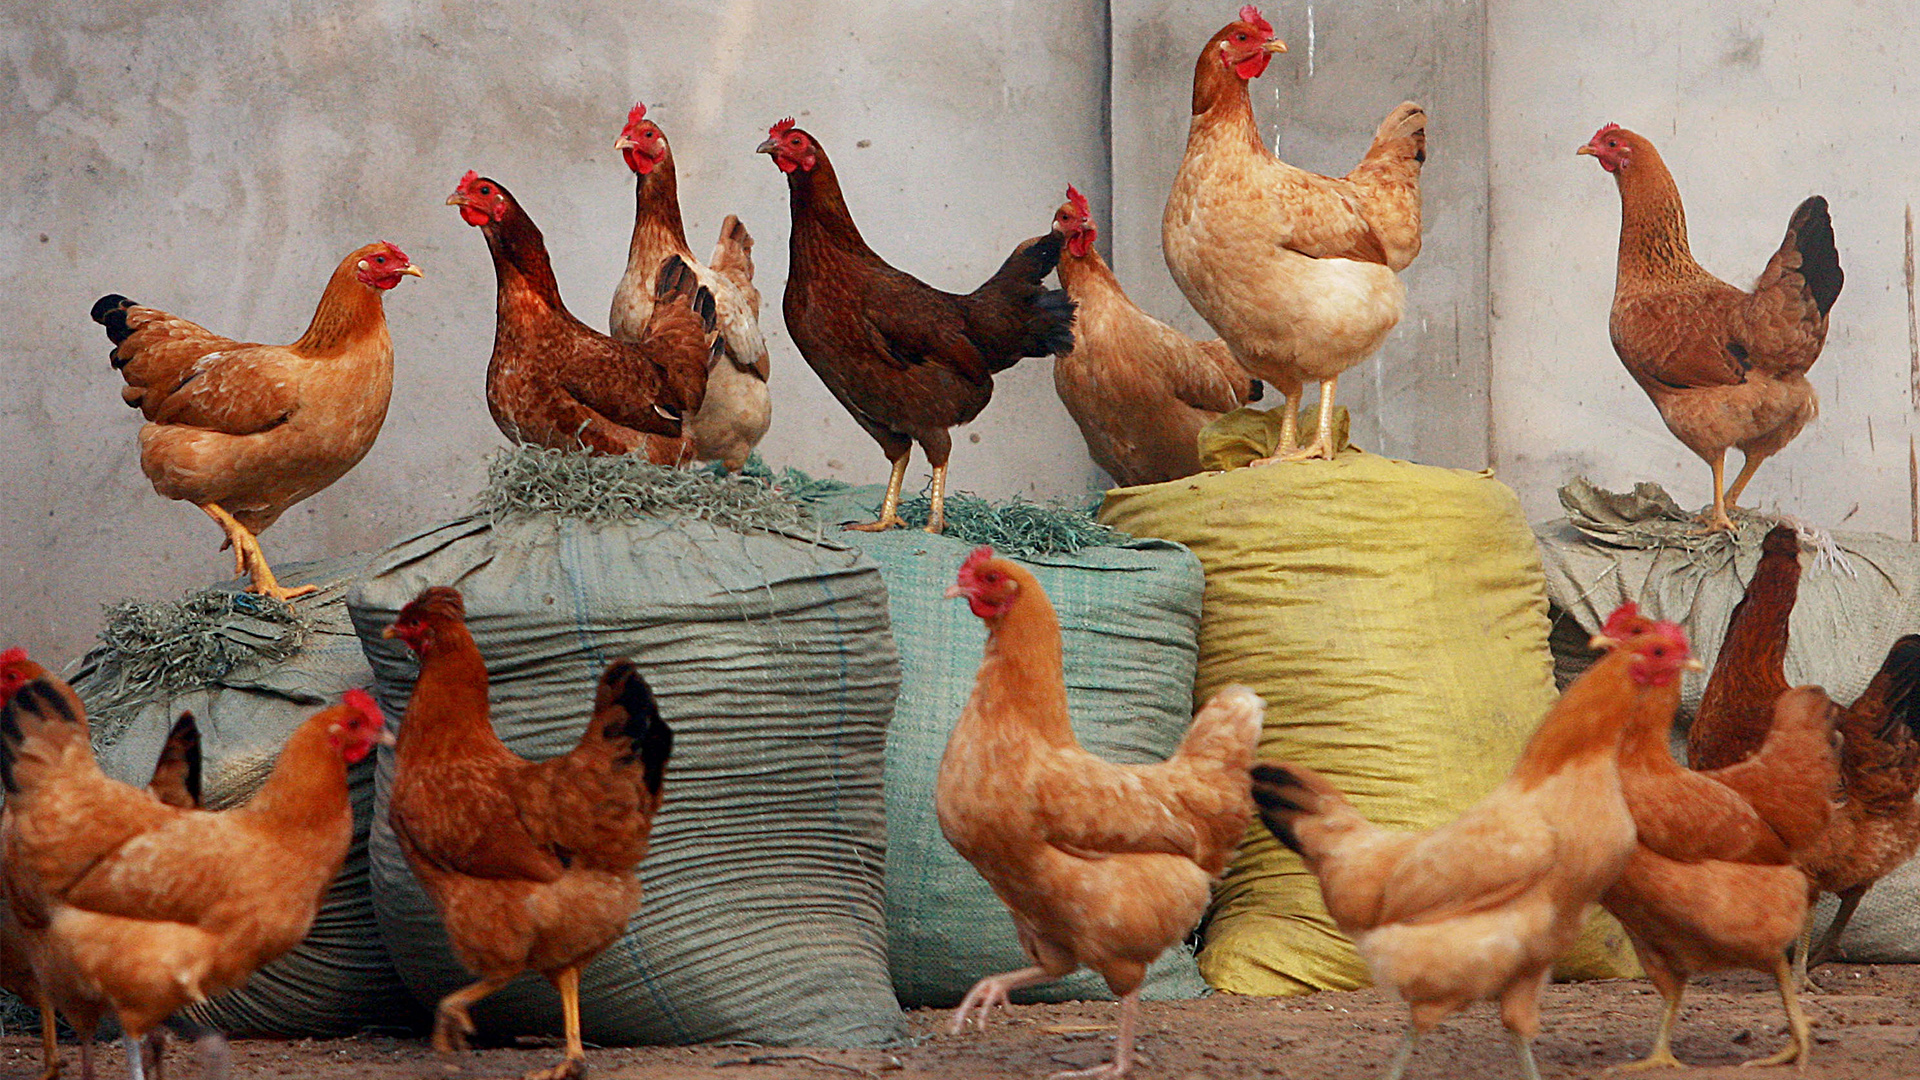 Six States in India Report Outbreak of Avian Flu